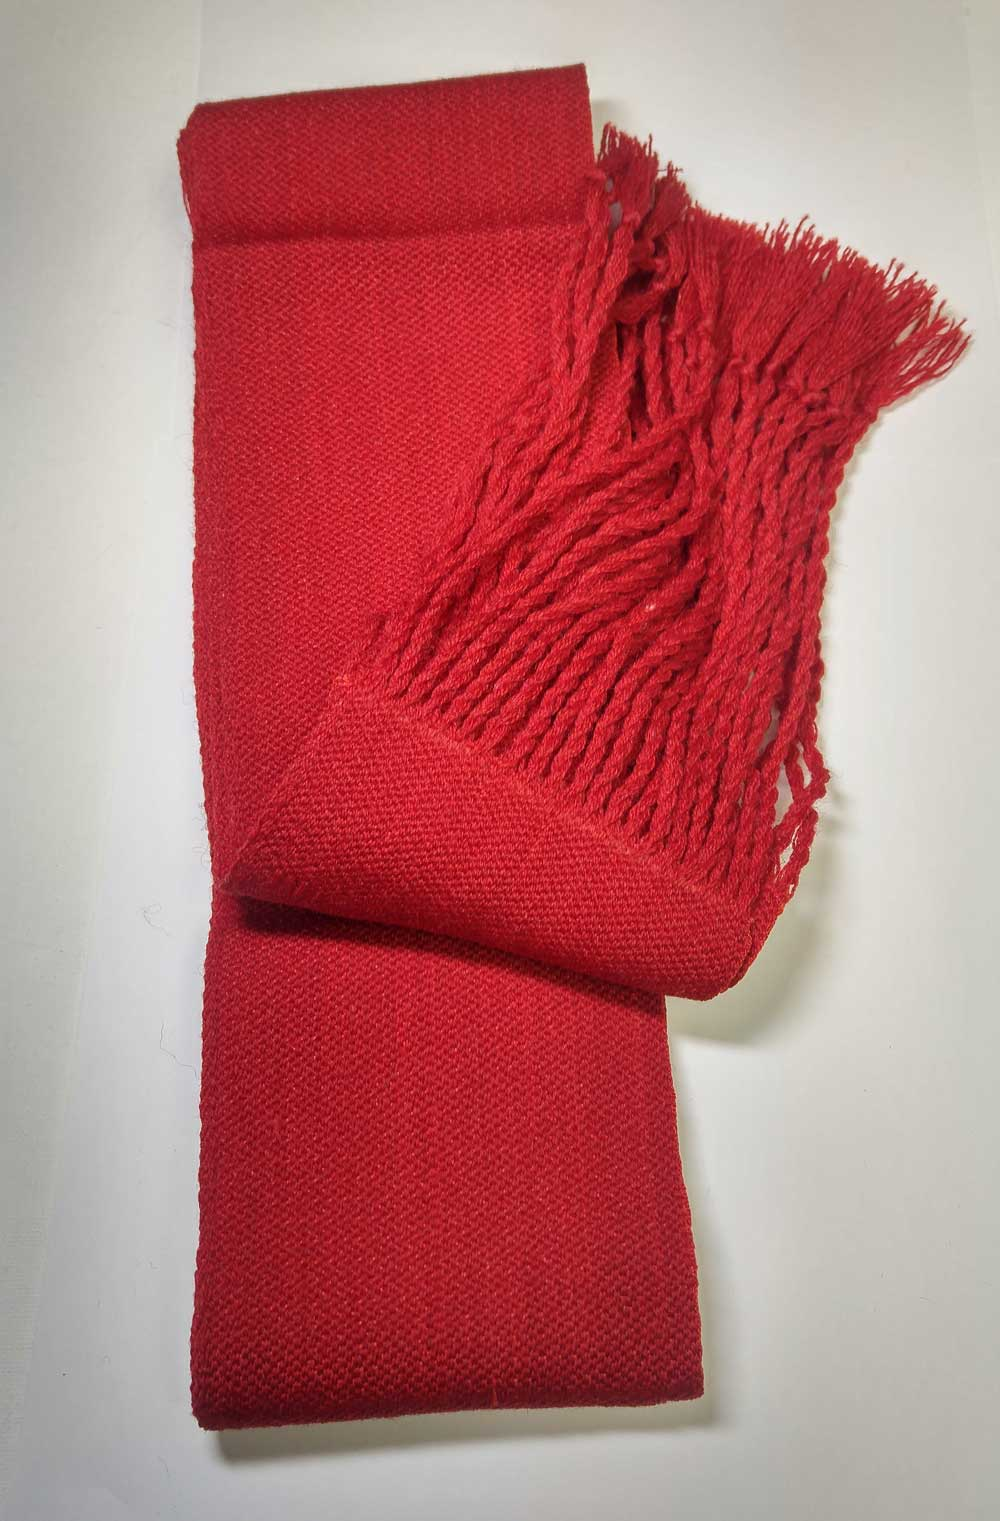 Sash: Sgt., Solid Red, 8/19C